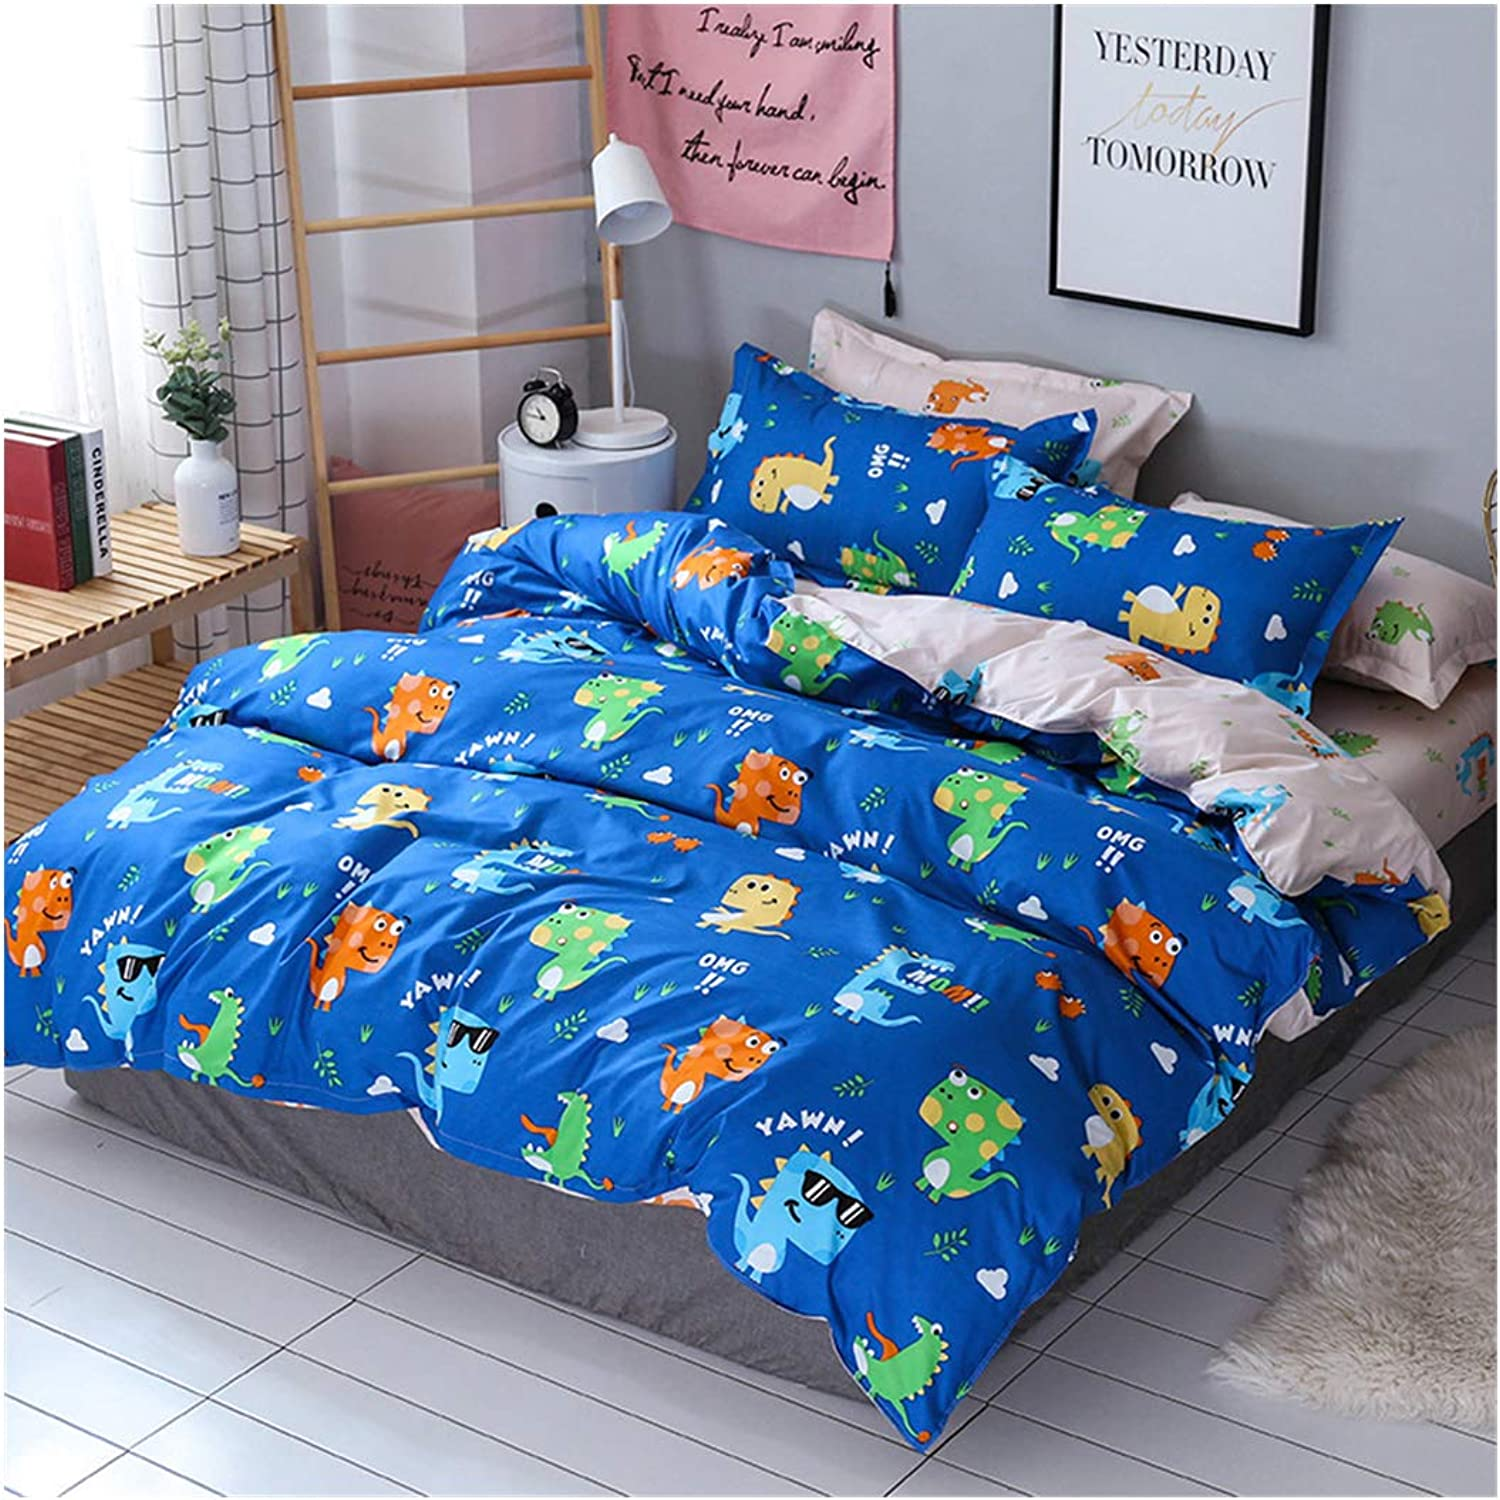 Homebed Cartoon Dinosaur Print Duvet Cover Sets for Kids Home Texitile Bedding Sets with 1 Comforter Cover 2 Pillow Shams, 3 Pieces Boys Girls Bed Set, bluee, Queen